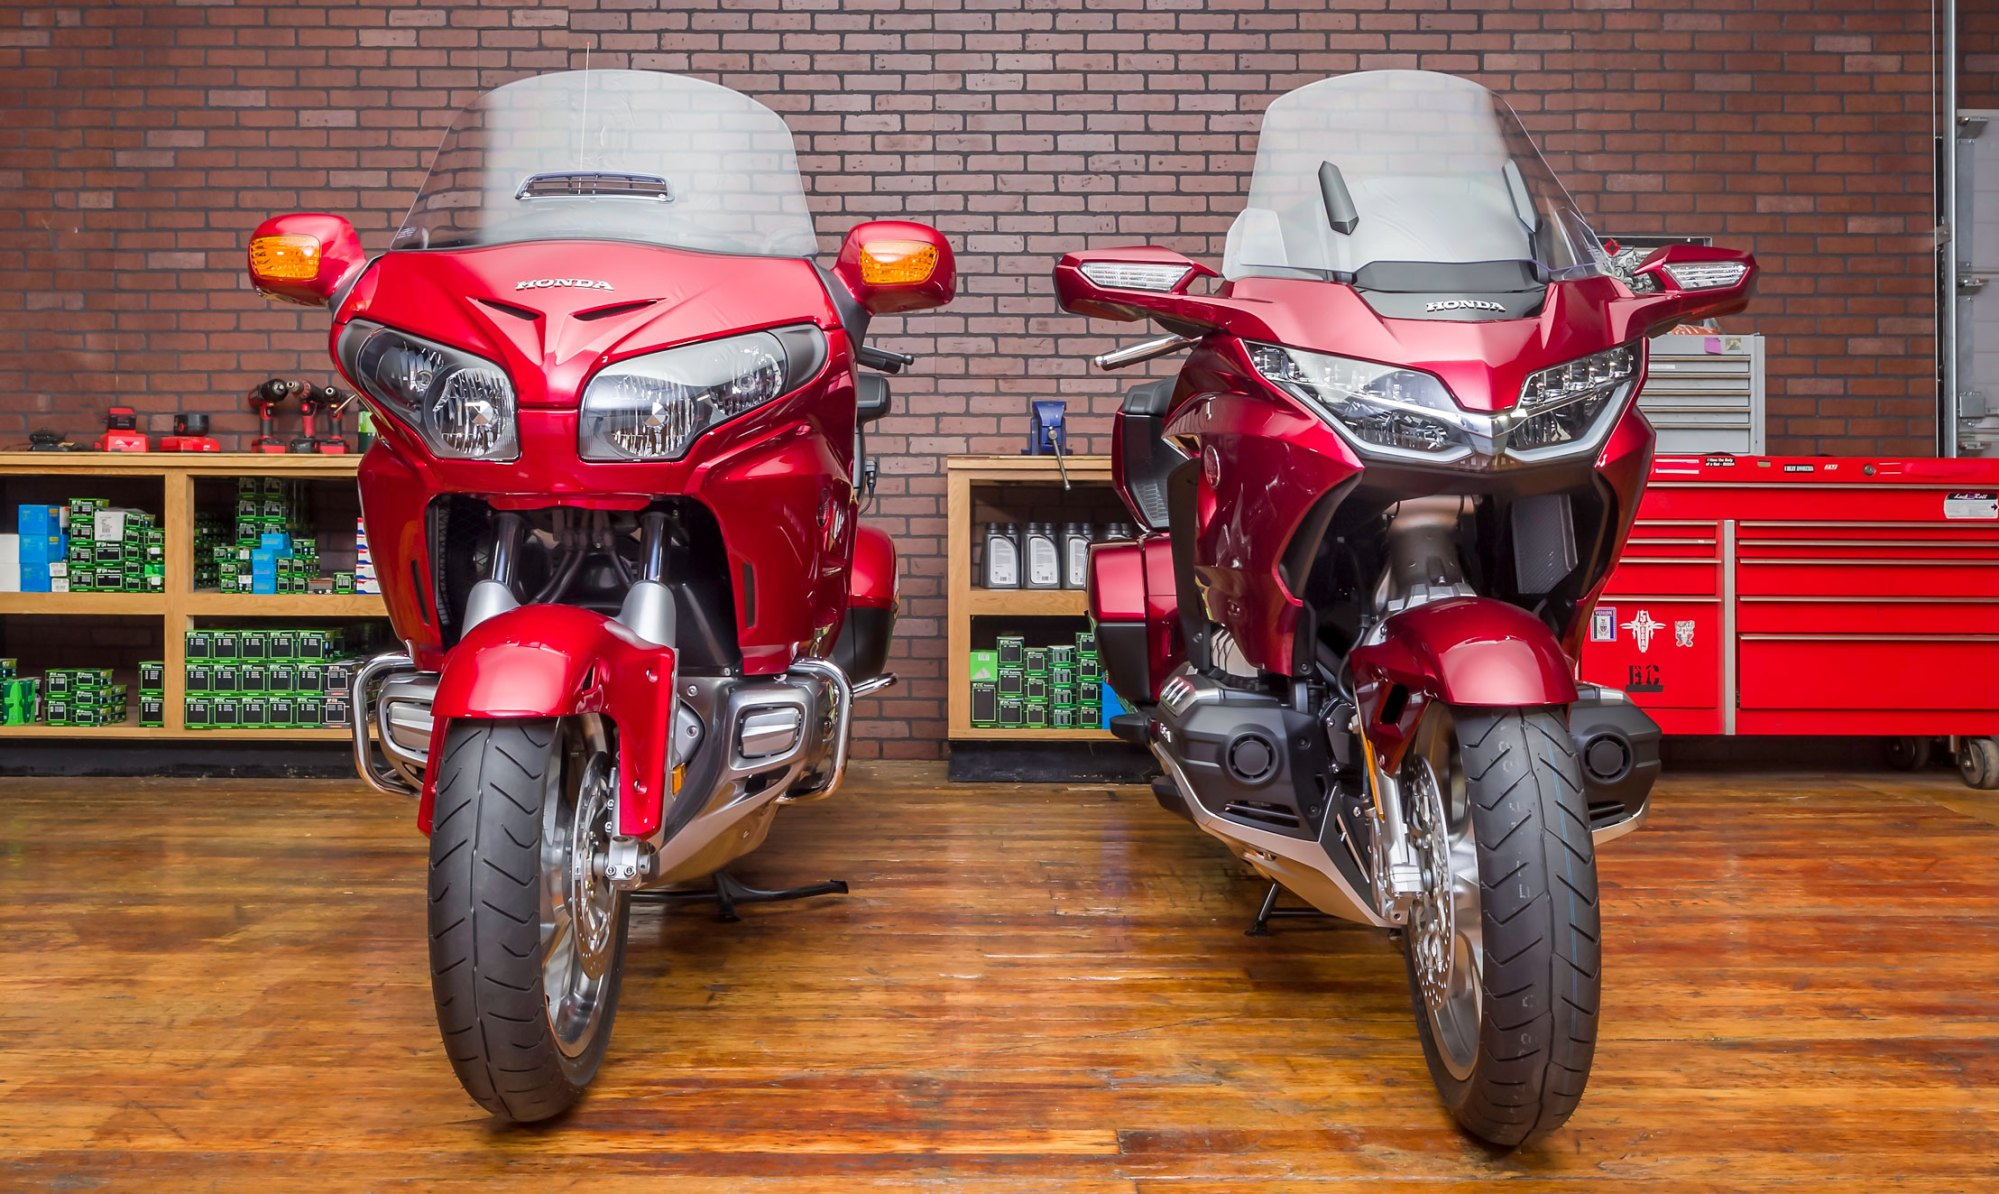 hight resolution of at 833 lbs full of gas the 2018 gold wing tour is claimed by honda to be 90 pounds lighter than the 2017 model that loss of weight will pay dividends in